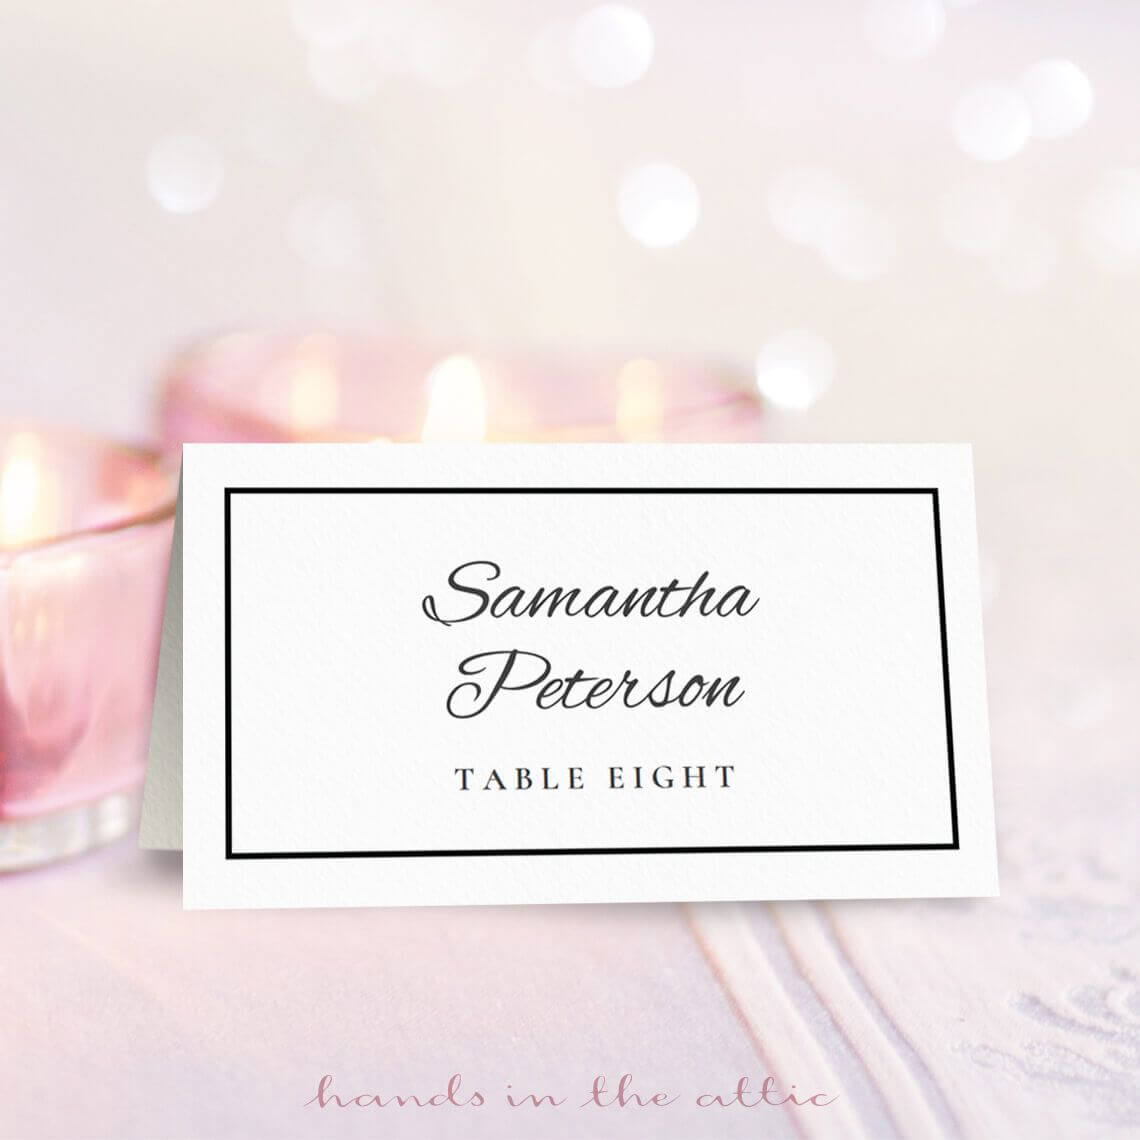 Wedding Place Card Template | Printable Place Cards, Place With Table Place Card Template Free Download